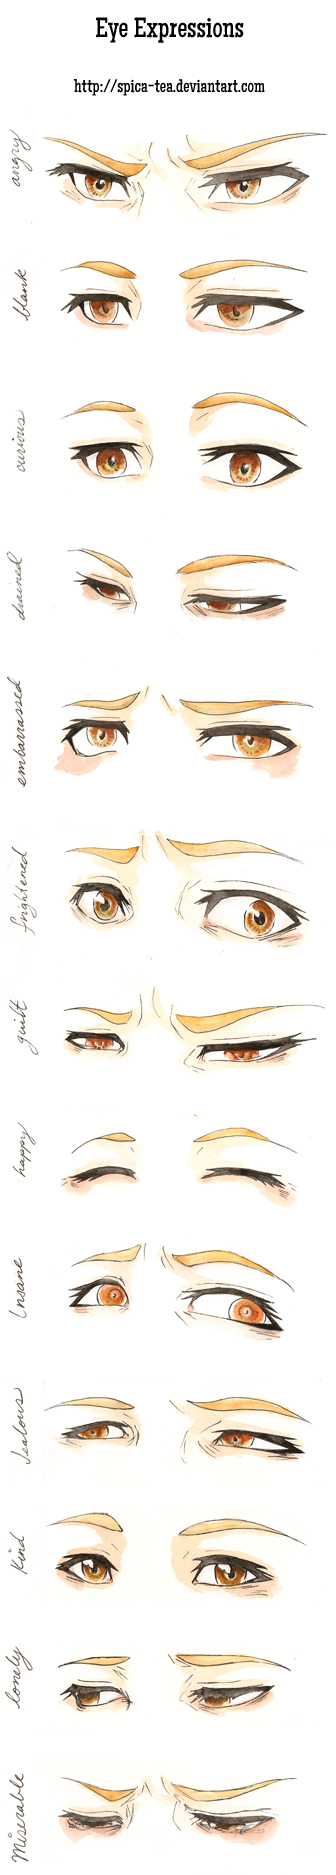 Eye expressions practice by CalSparrow